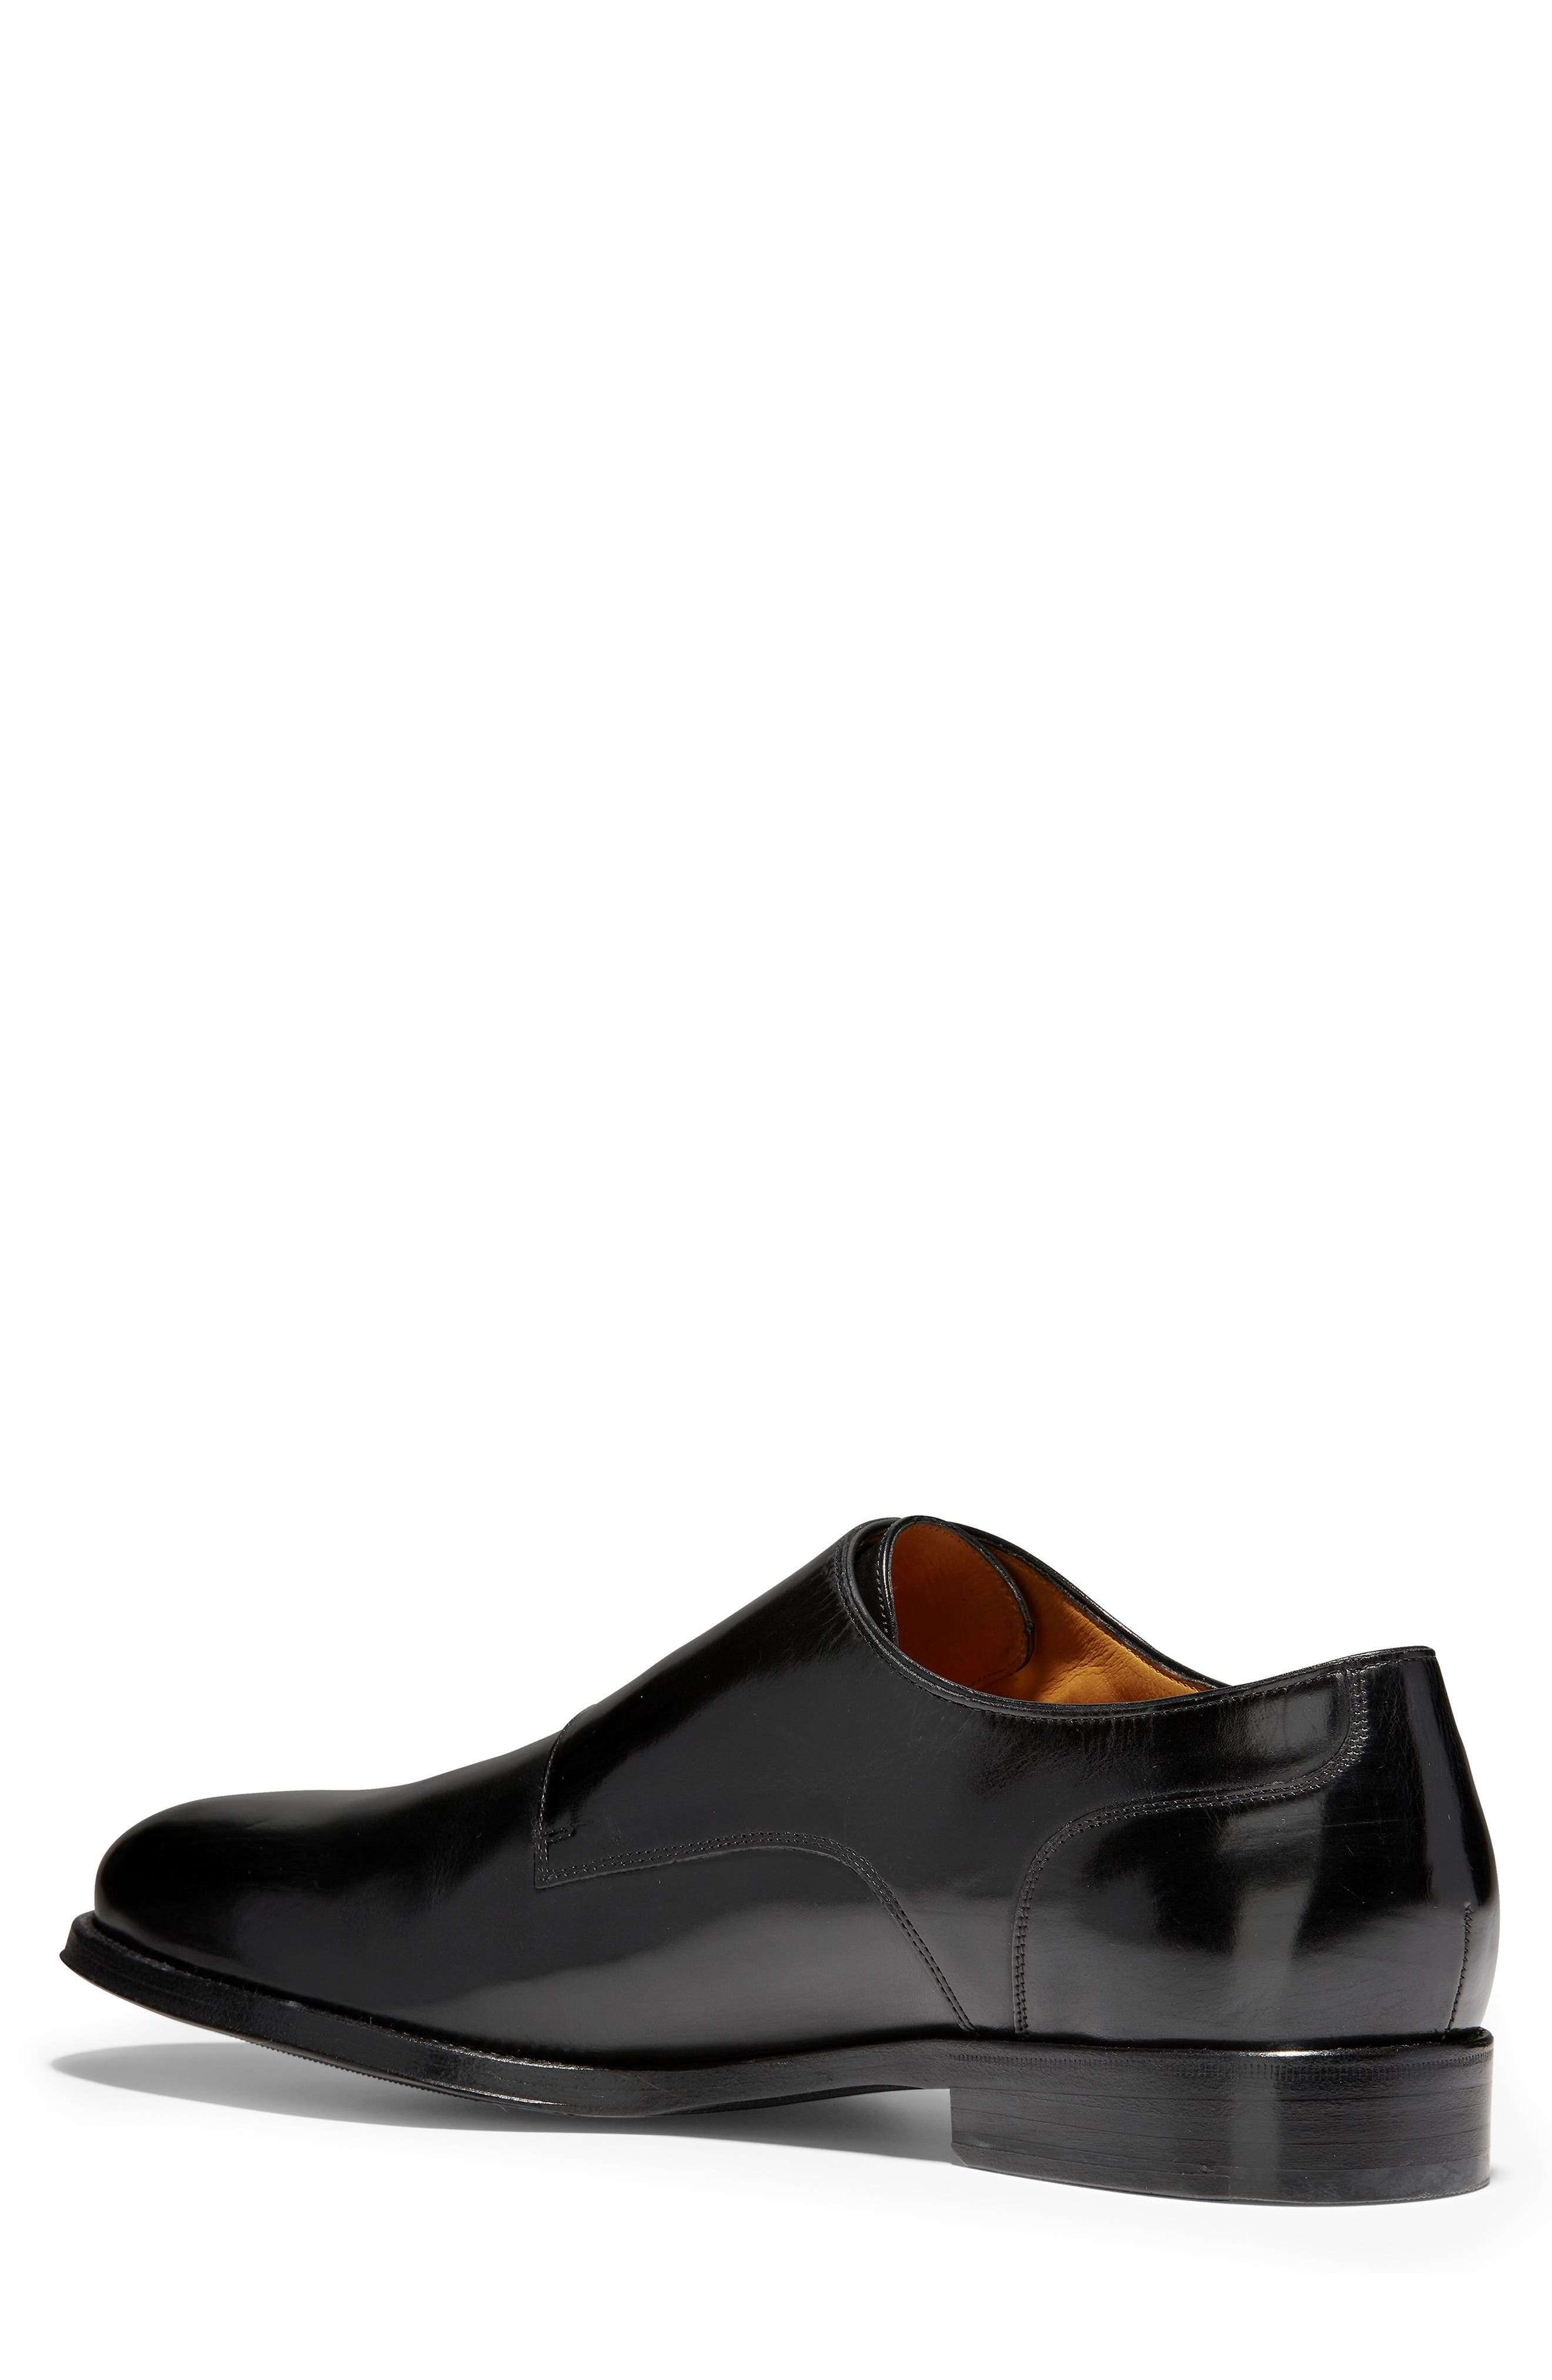 American Classics Gramercy Double Strap Monk Shoe,                             Alternate thumbnail 2, color,                             BLACK LEATHER